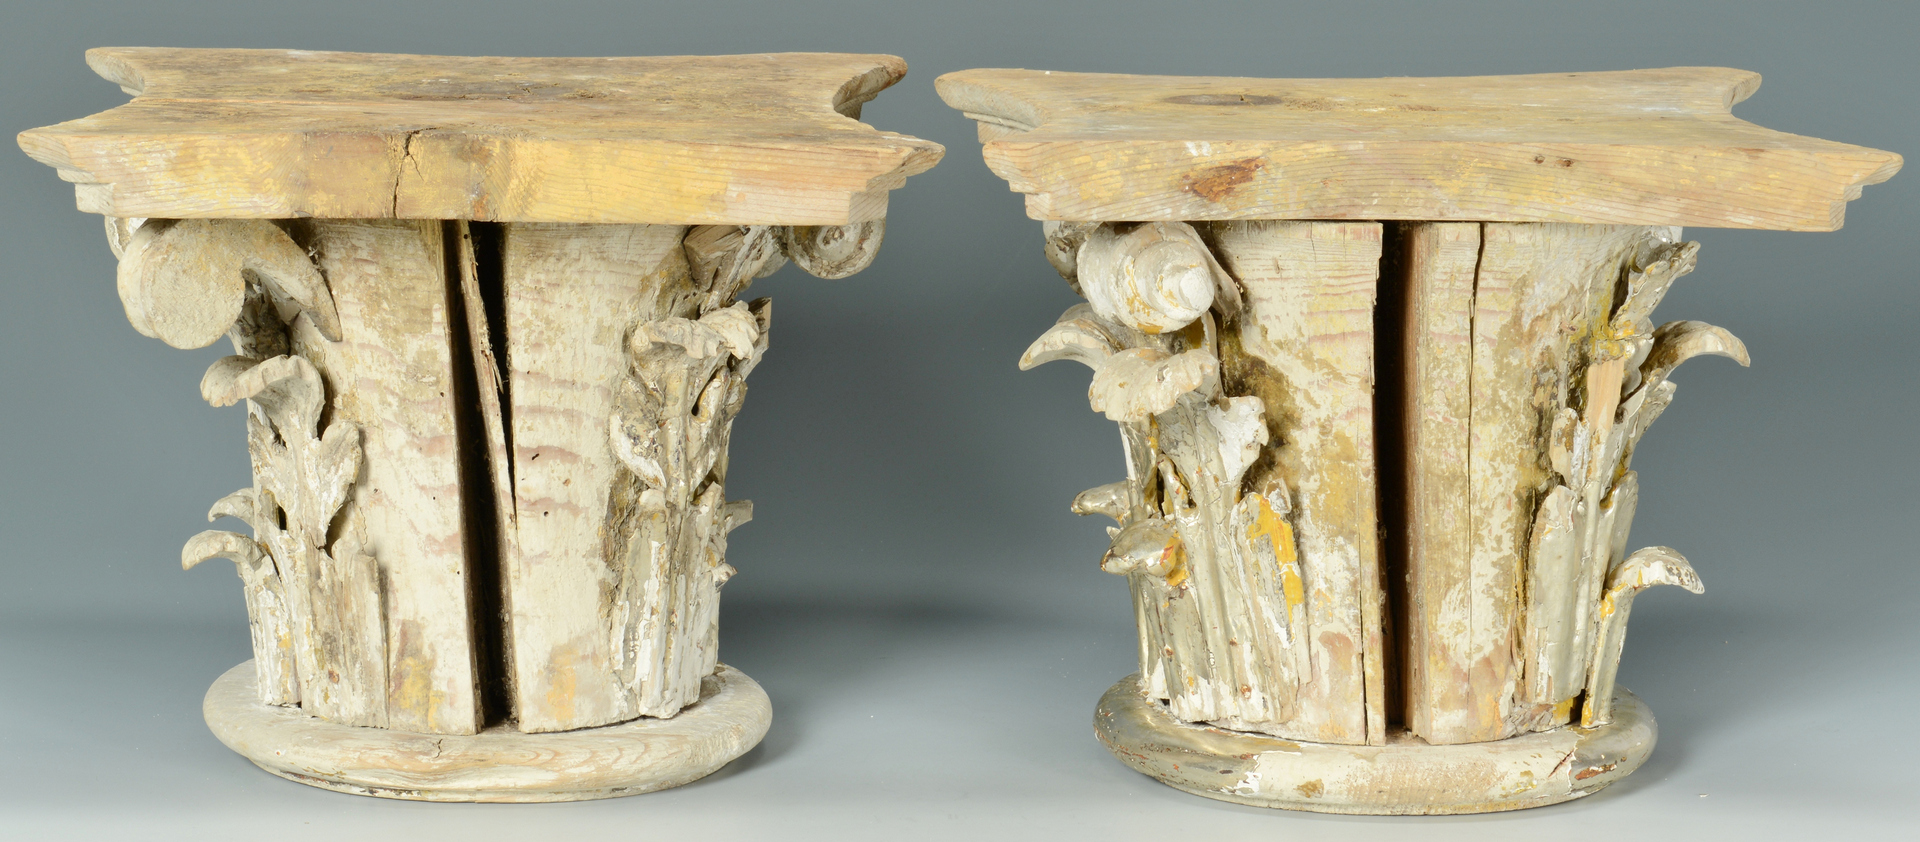 Lot 3088245: Pair of Silvered Gilt Corinthian Capitals